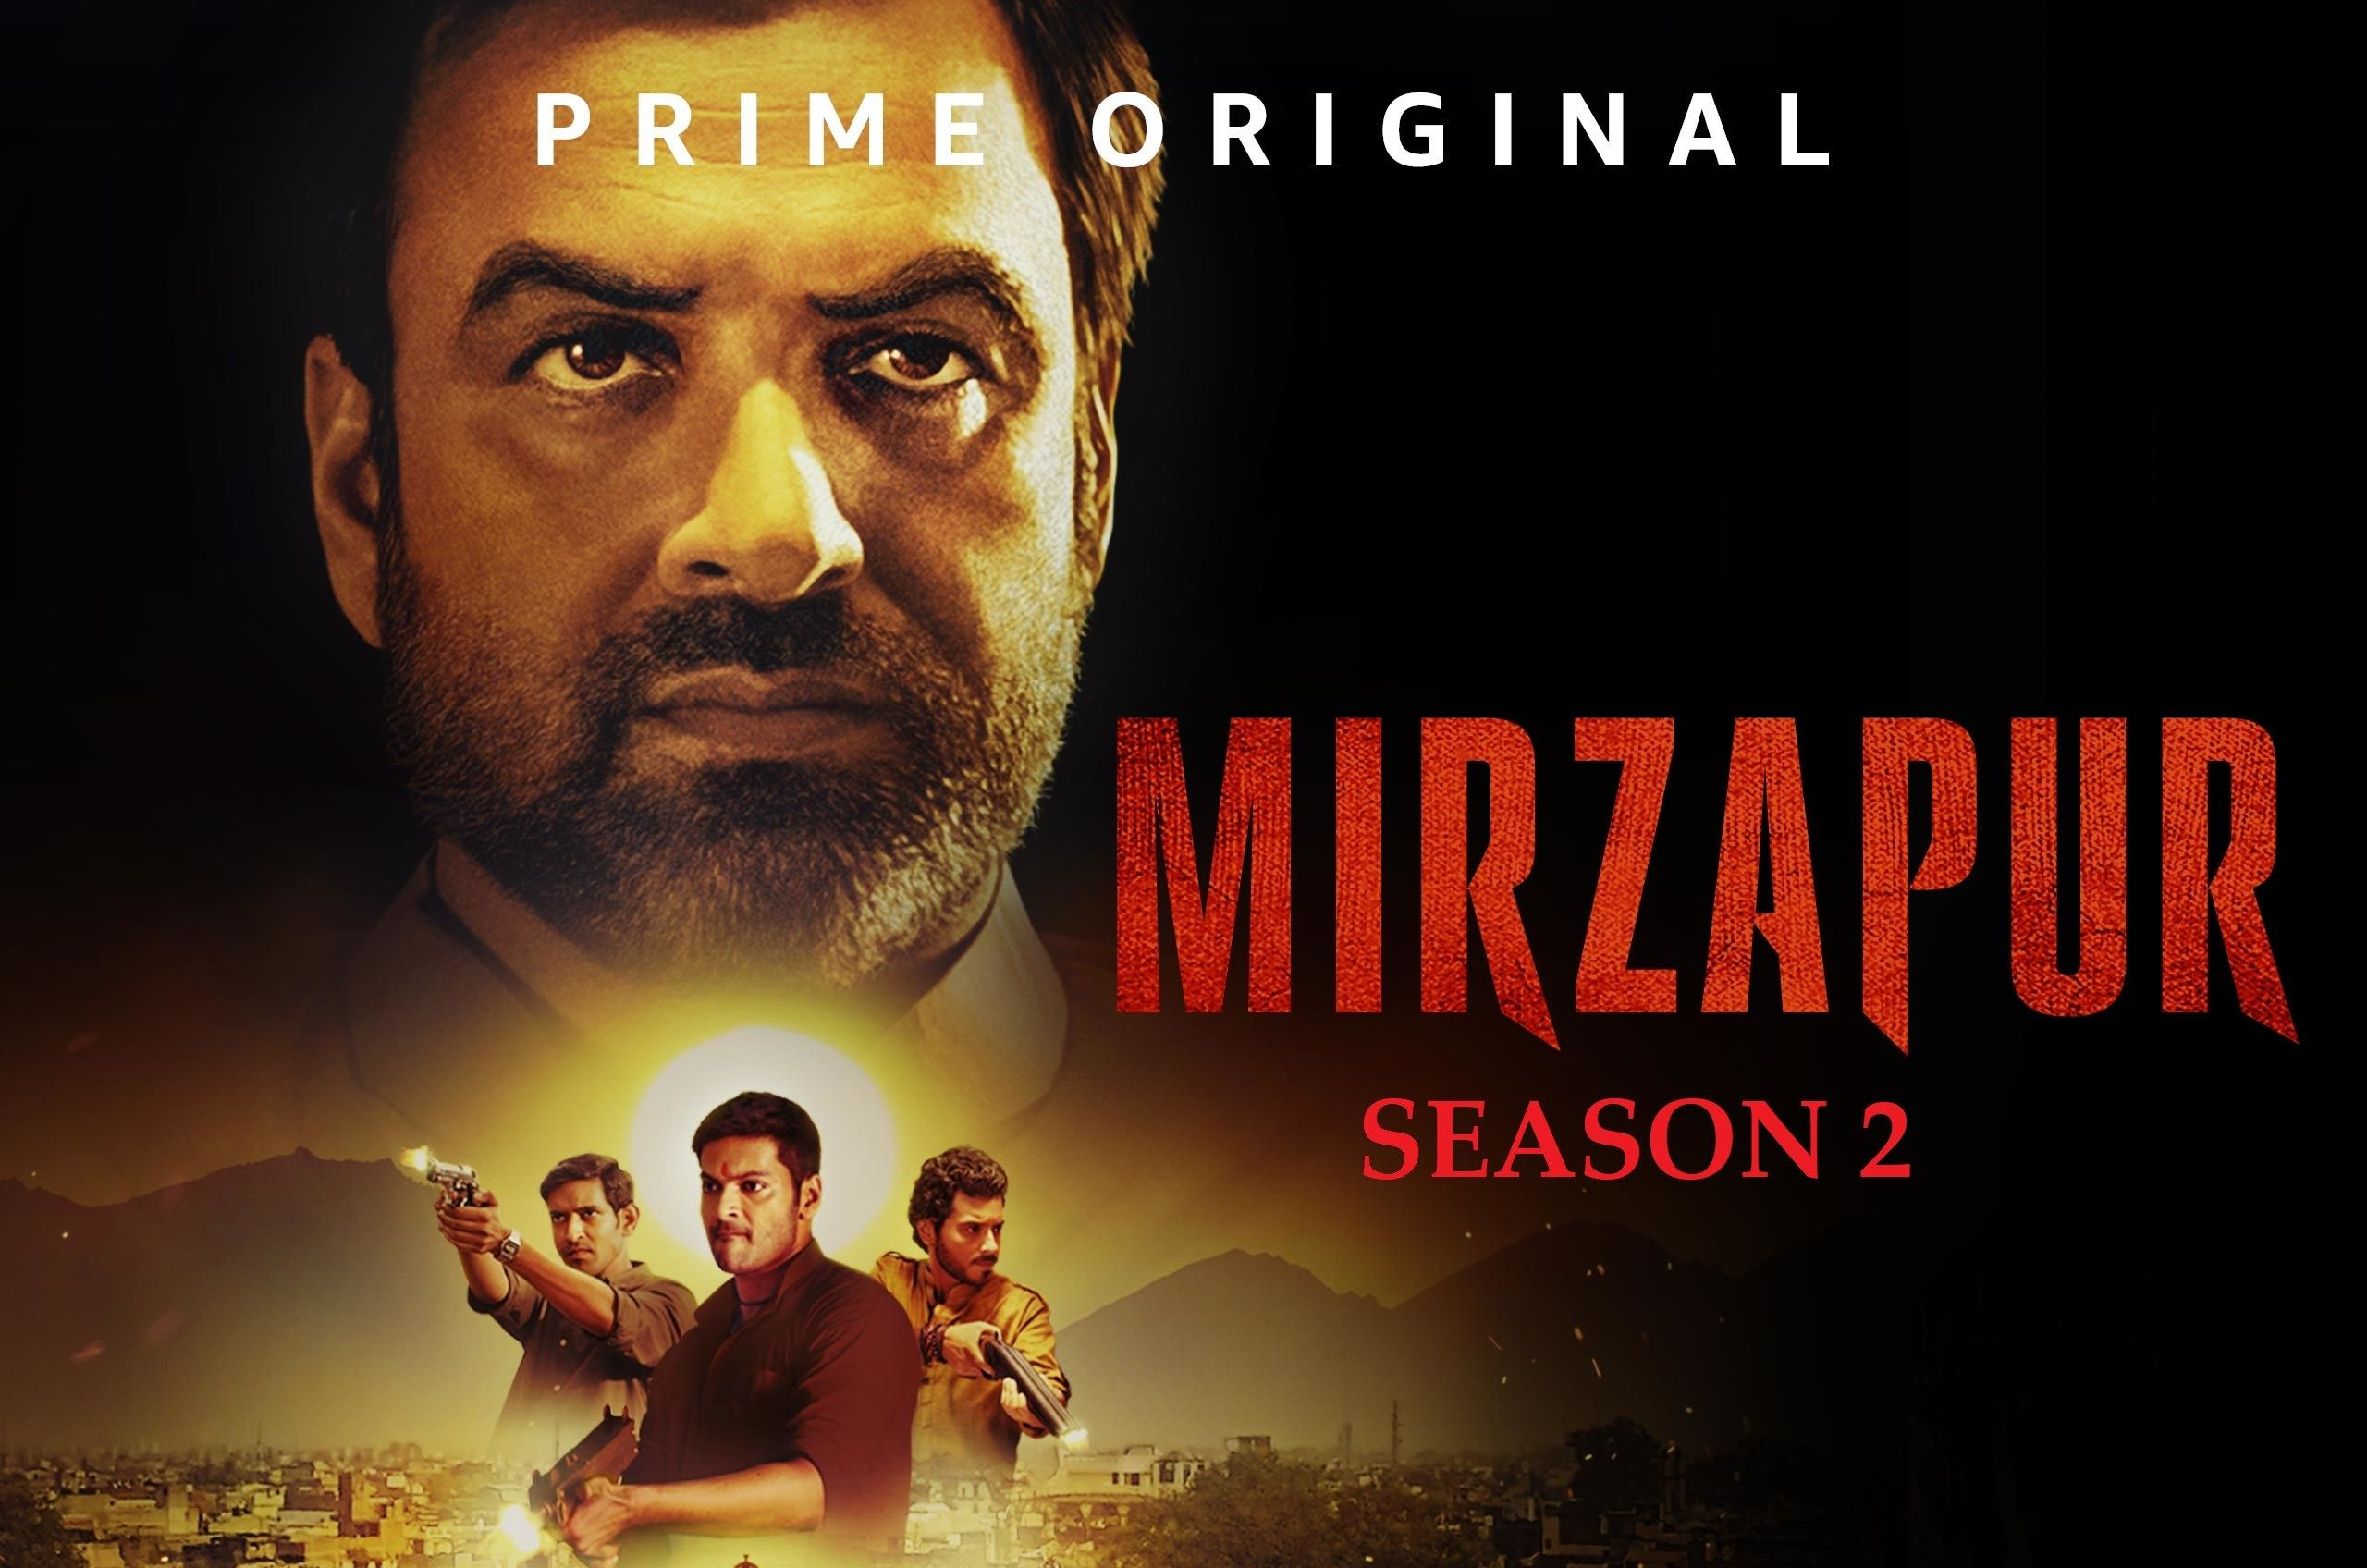 Mirzapur Season 2 full web series download